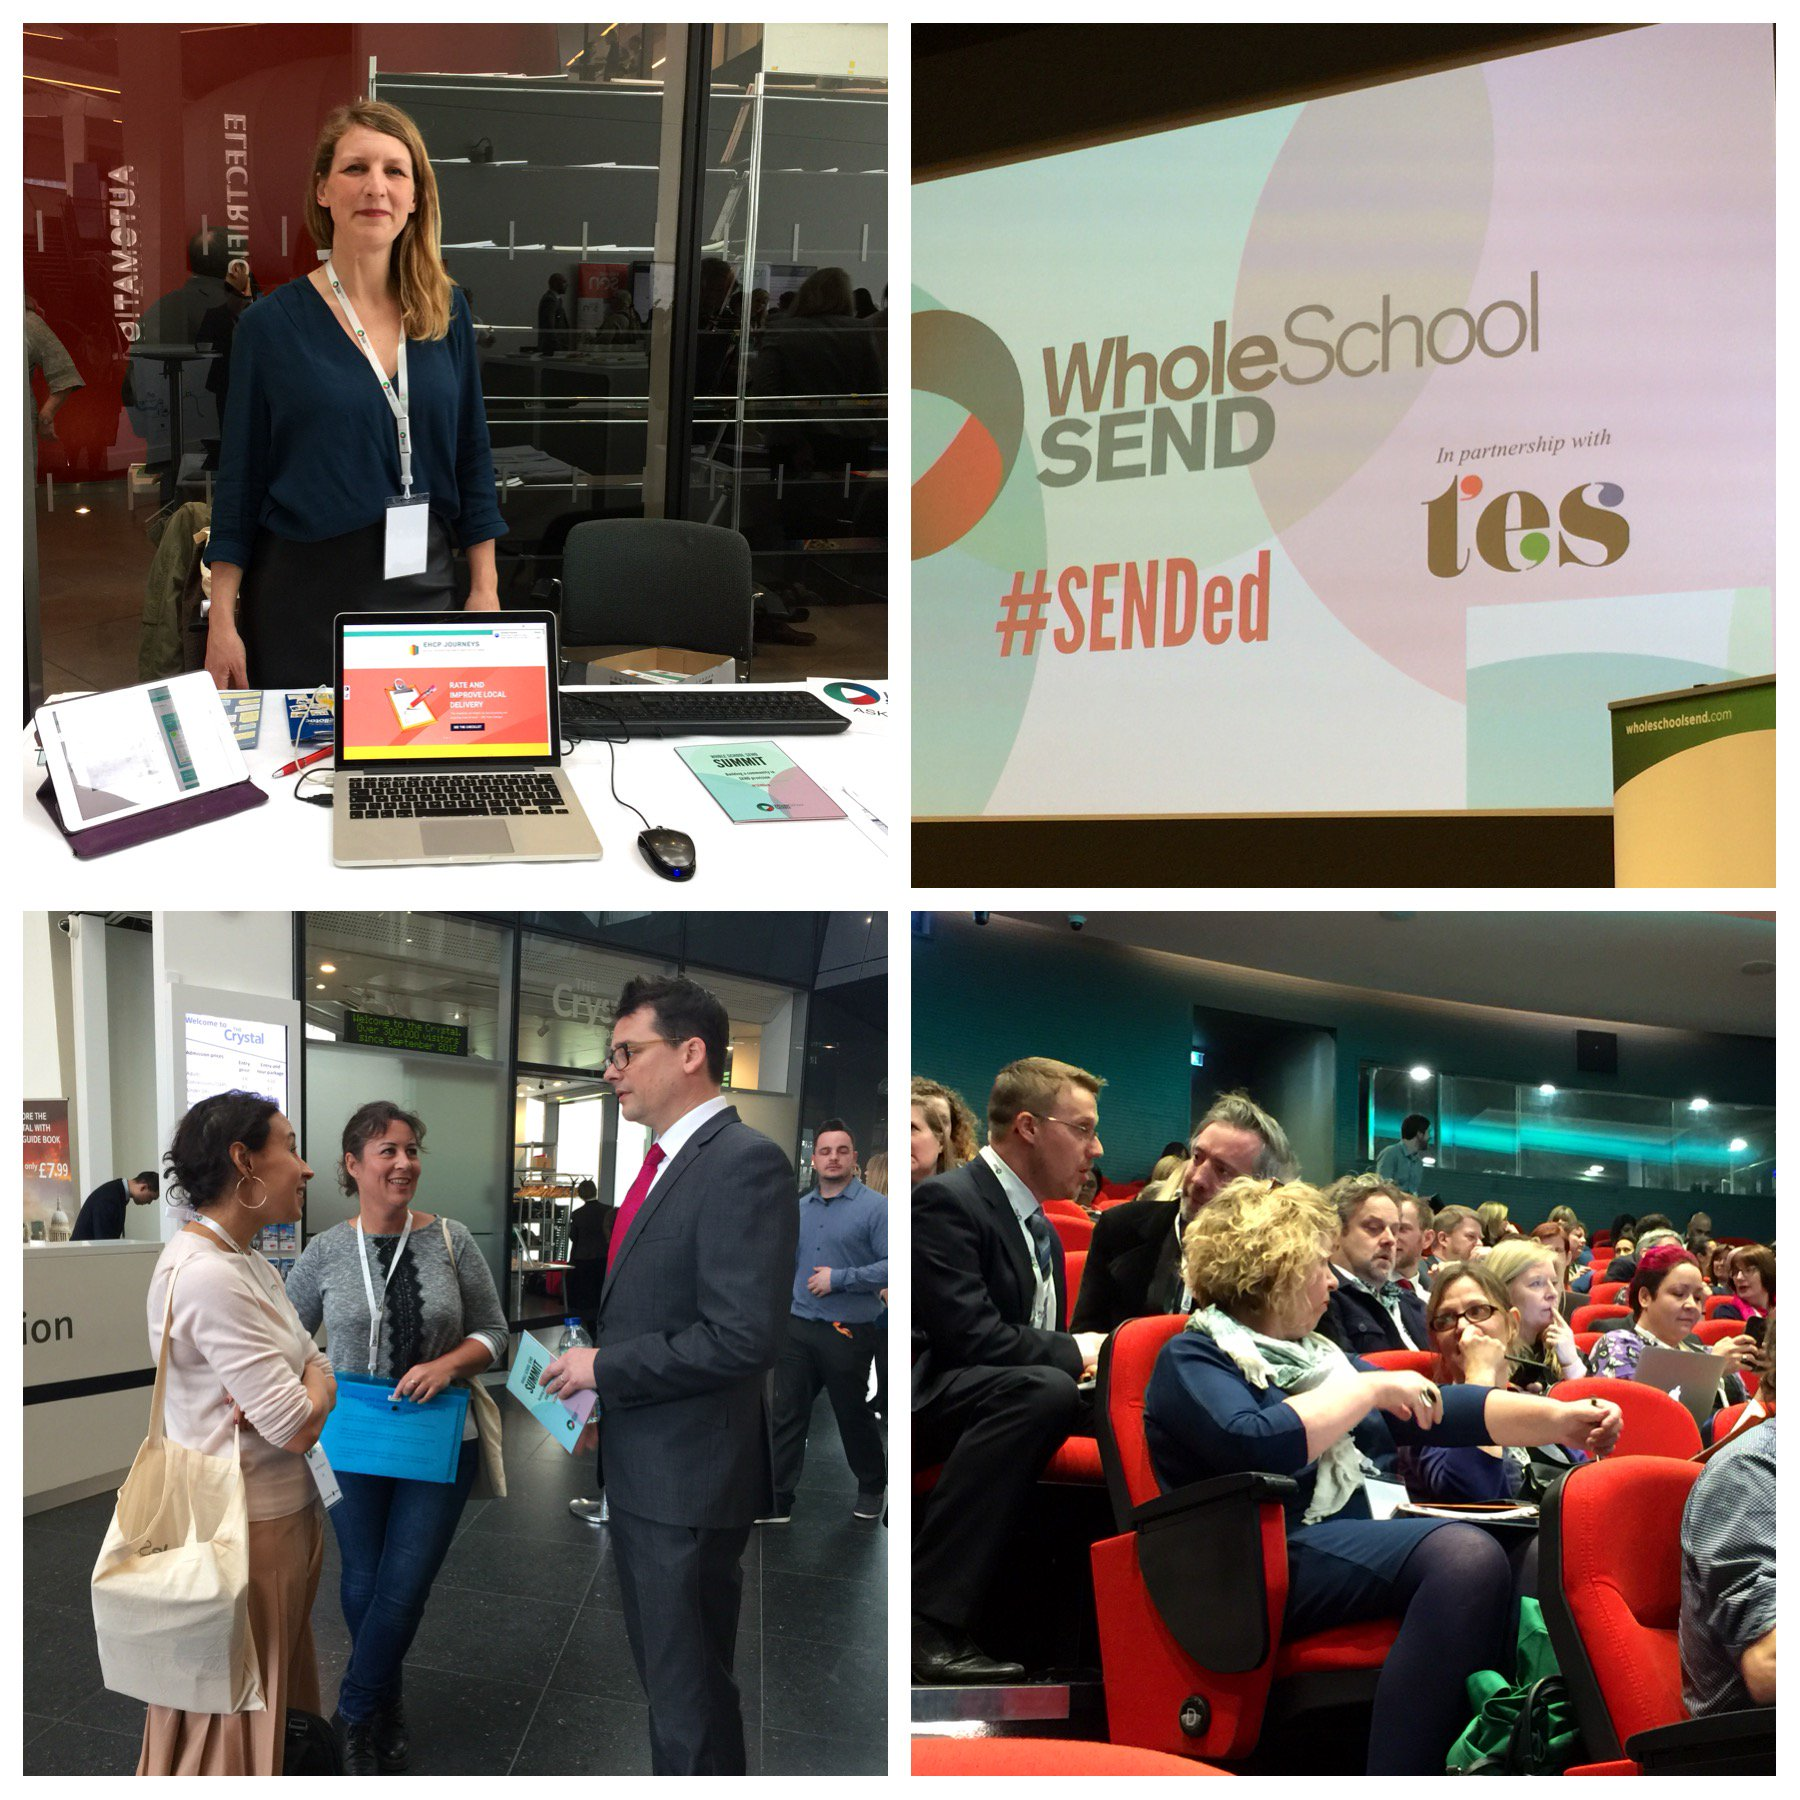 Just getting started at a packed @WholeSchoolSEND #SENDed https://t.co/YbRTebwsWD